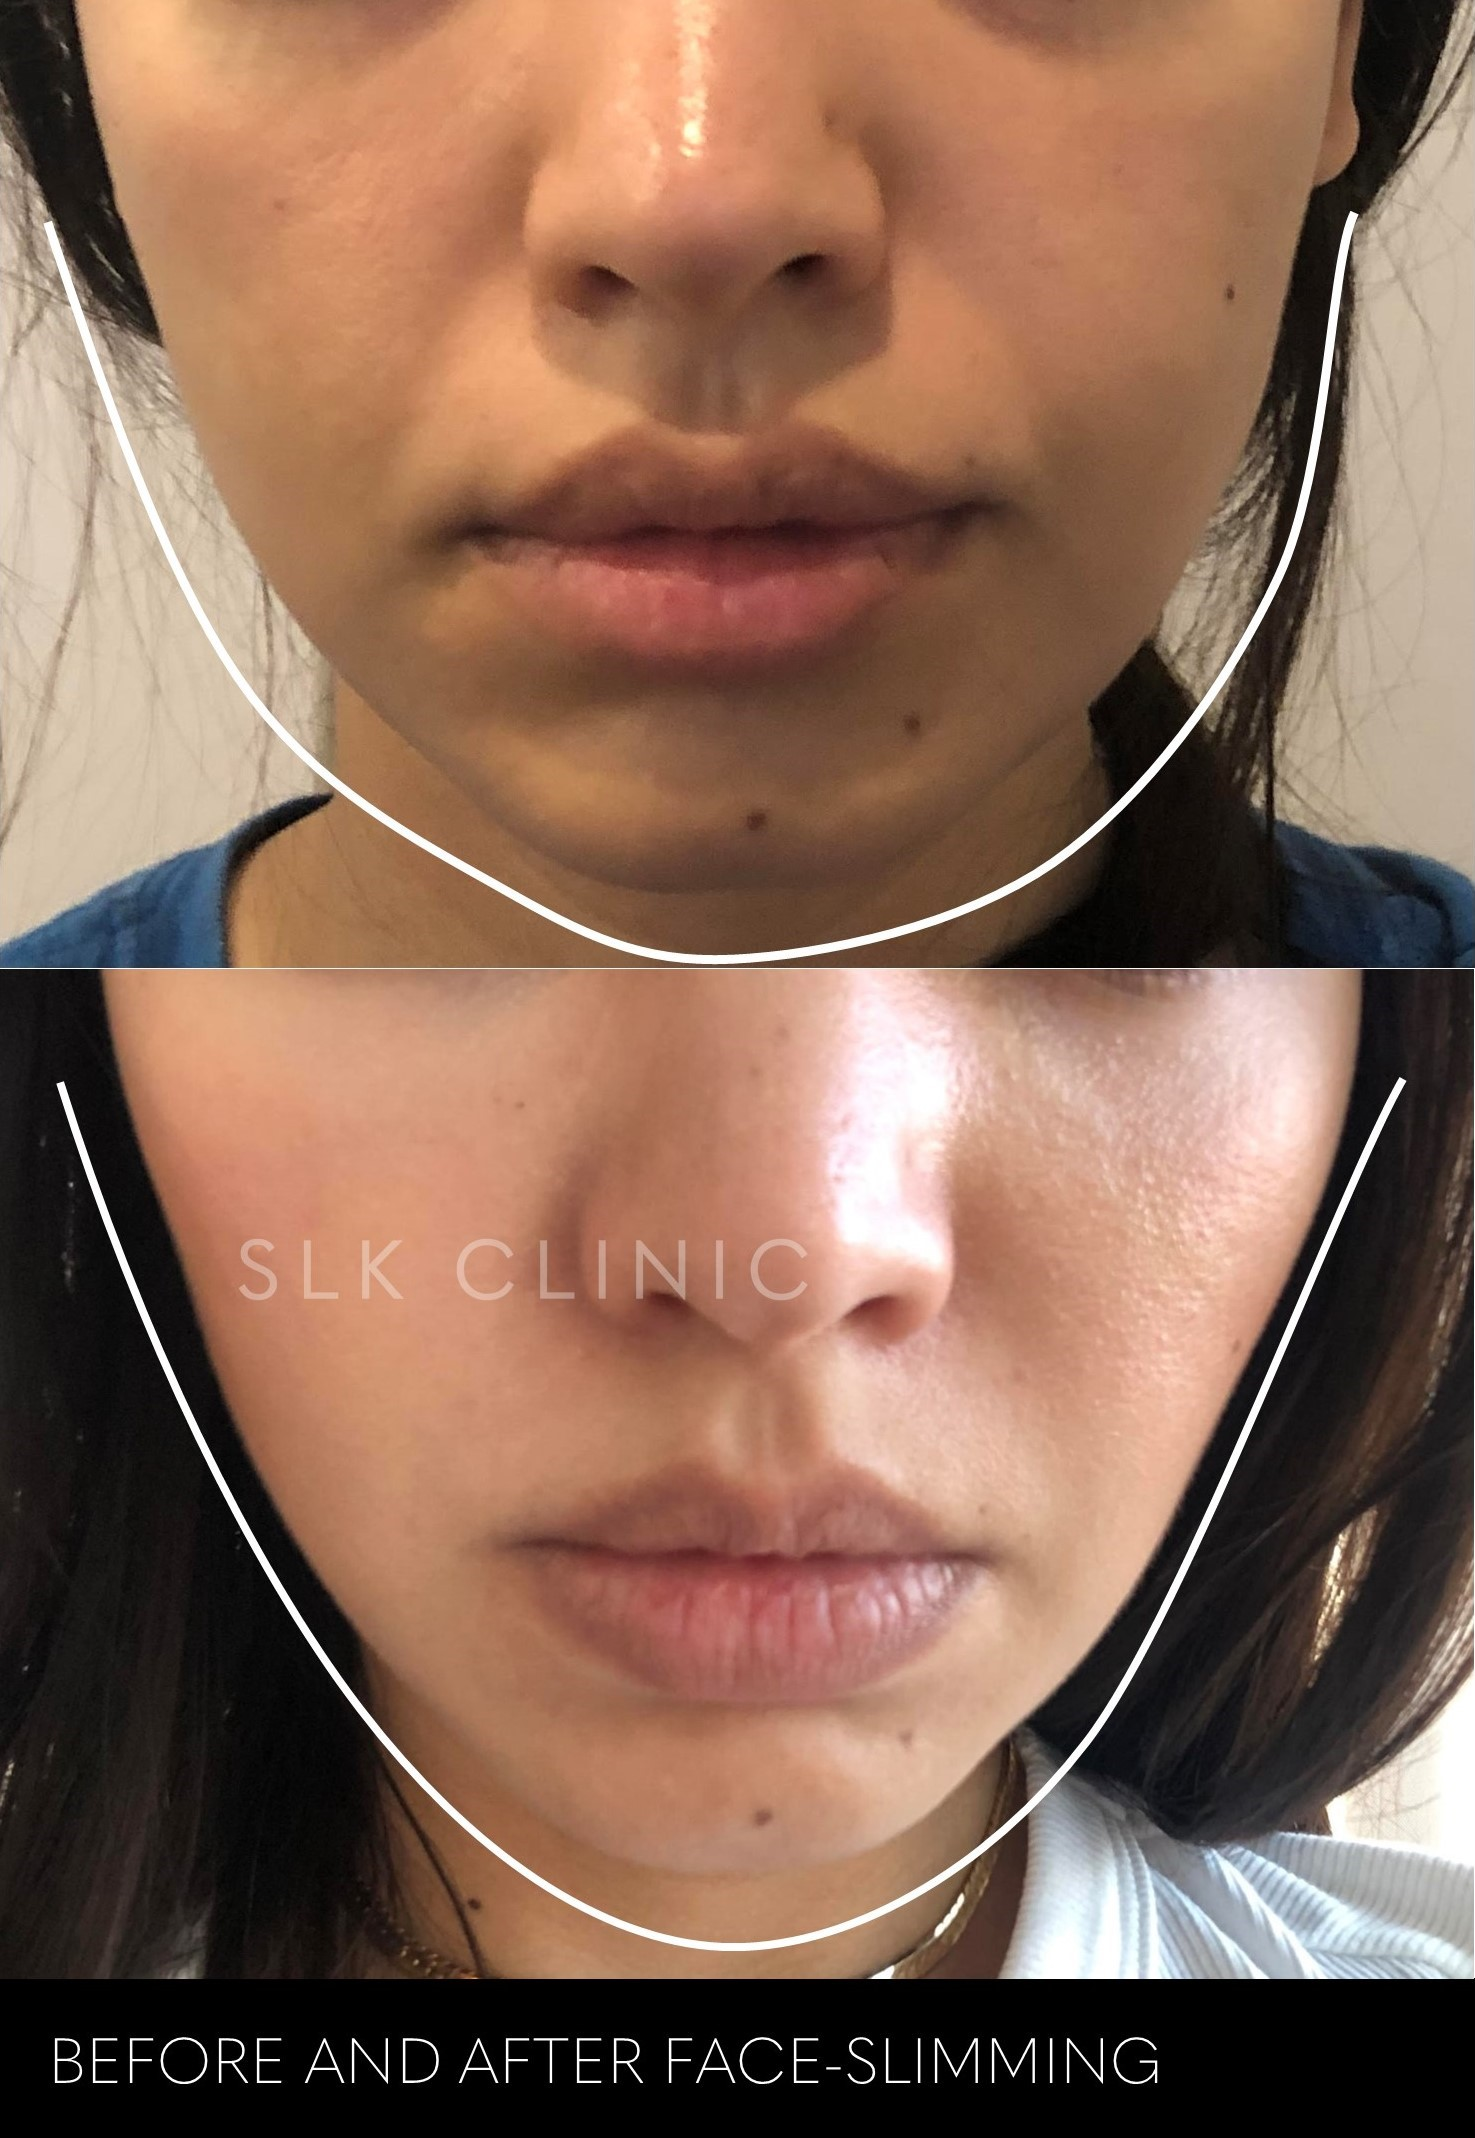 face-slimming before and after slk nashville filler and skin tightening